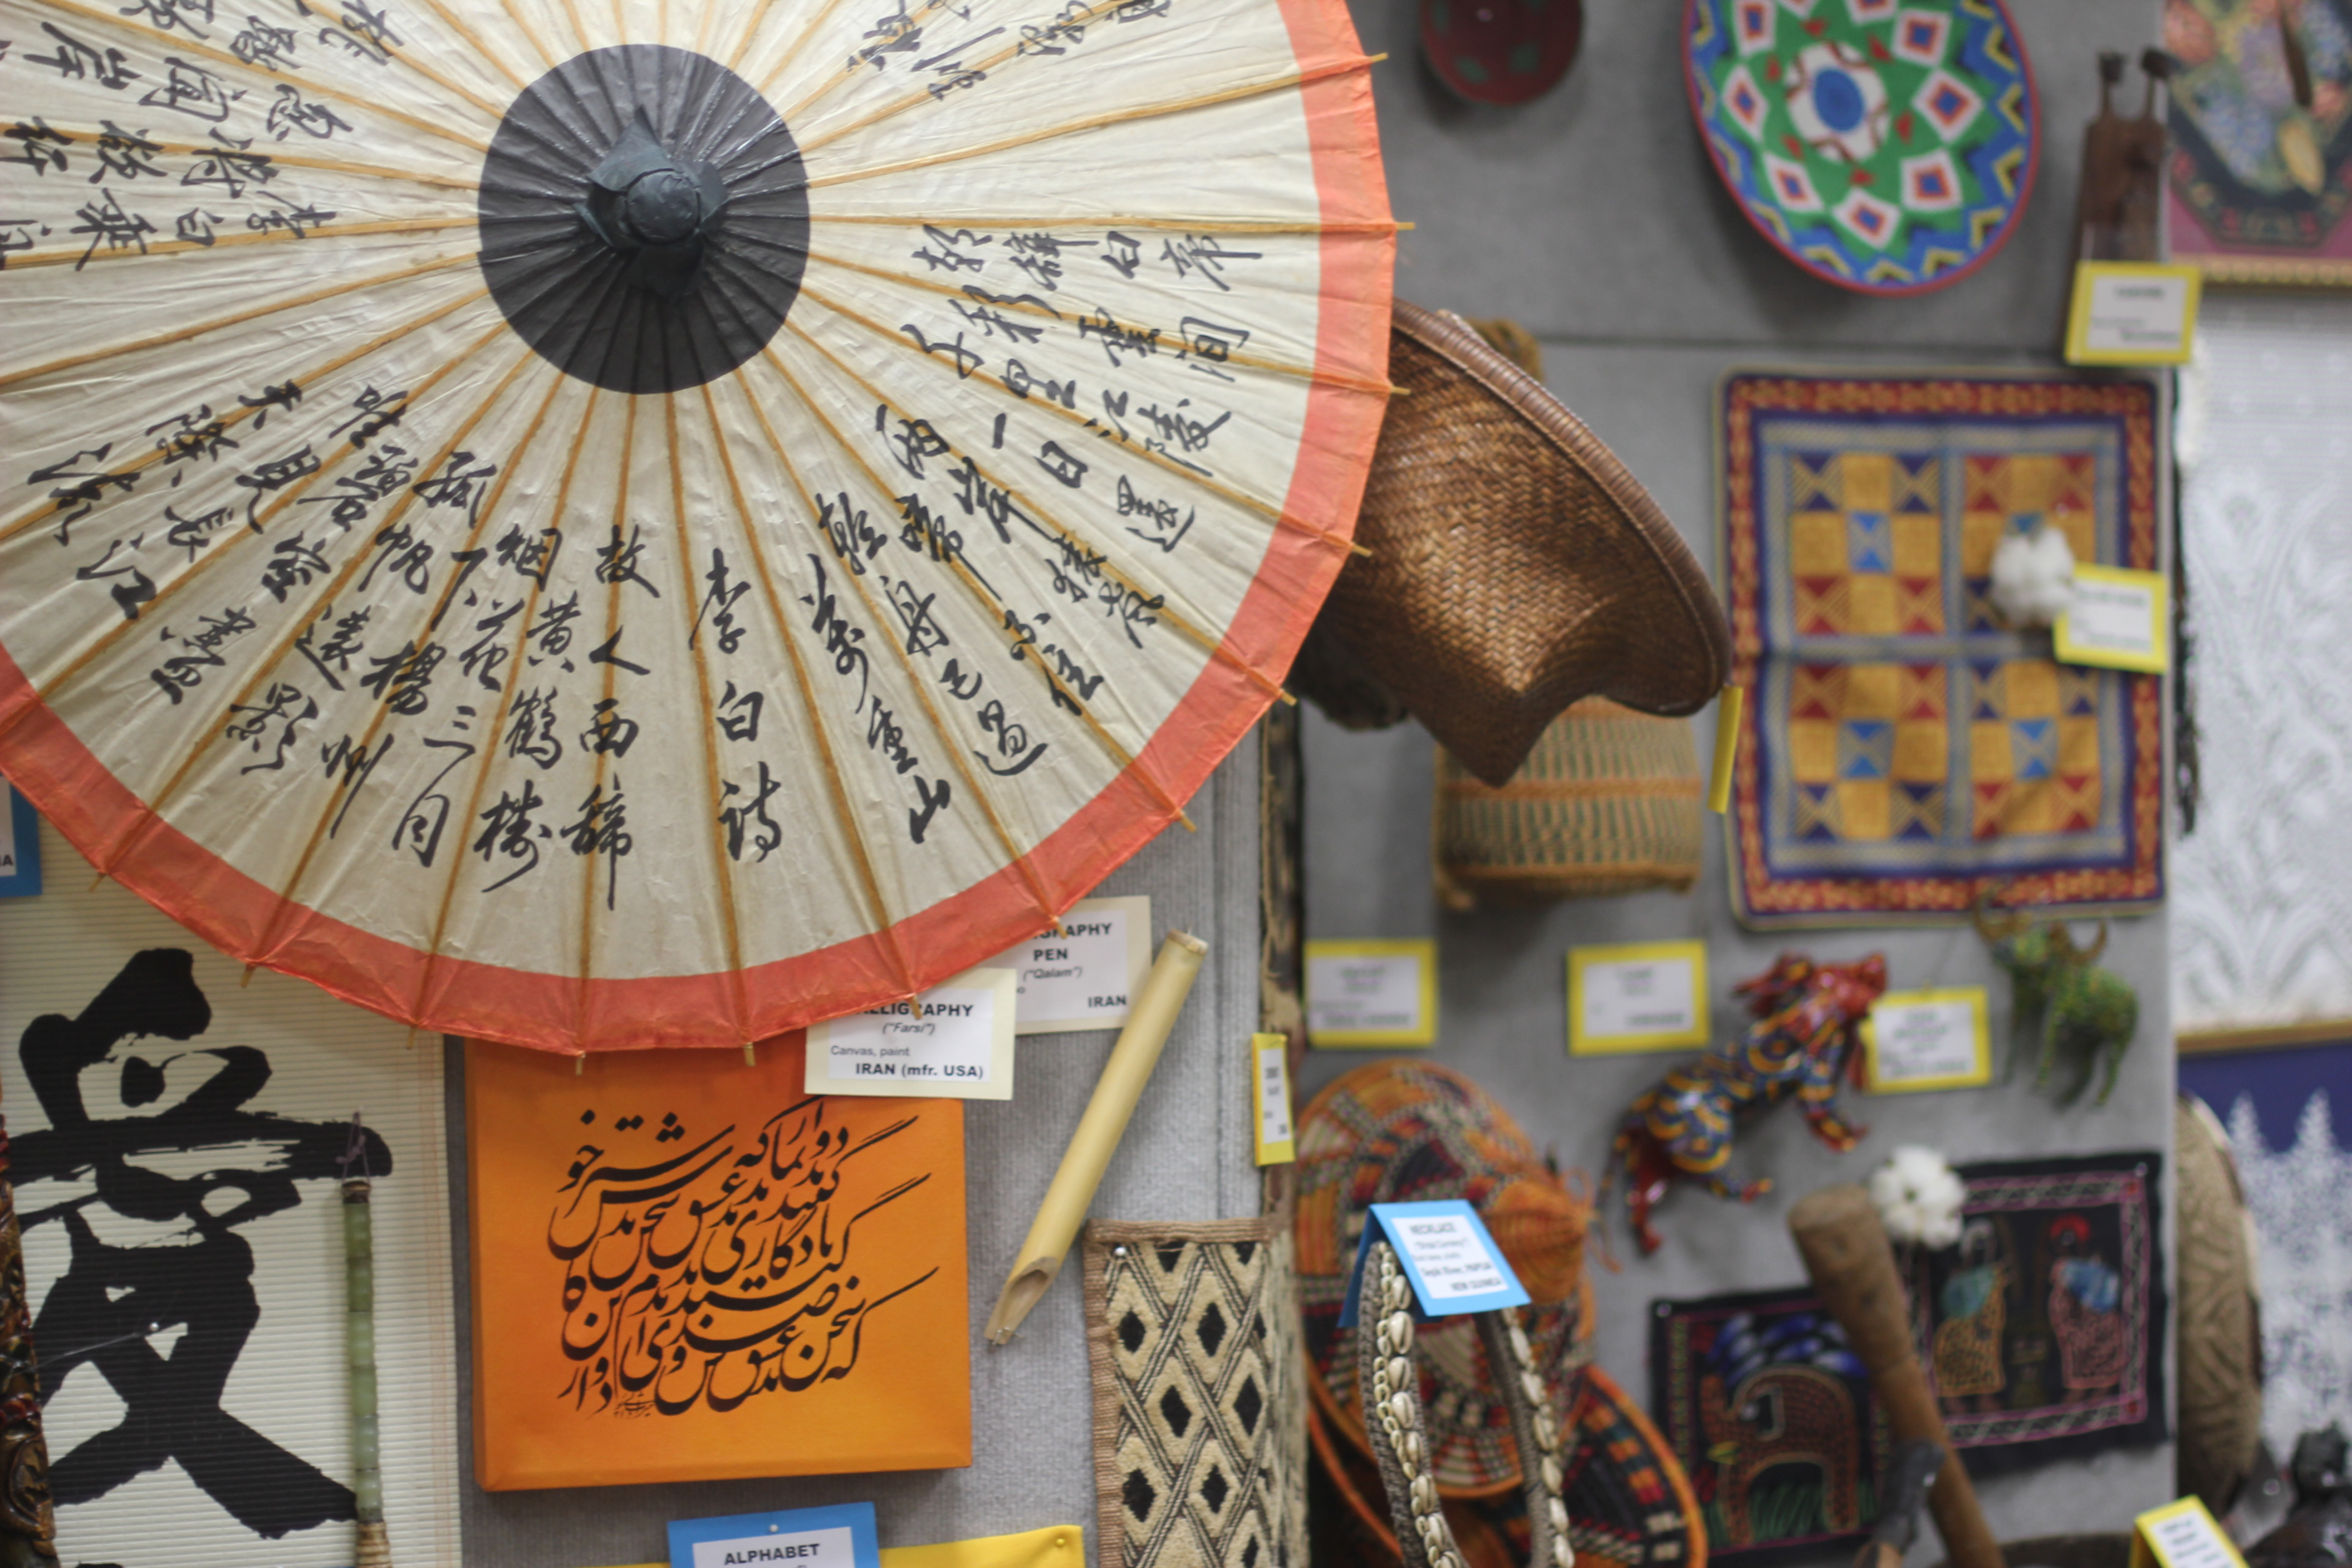 Lezin's collection includes spices, foreign money and silks.